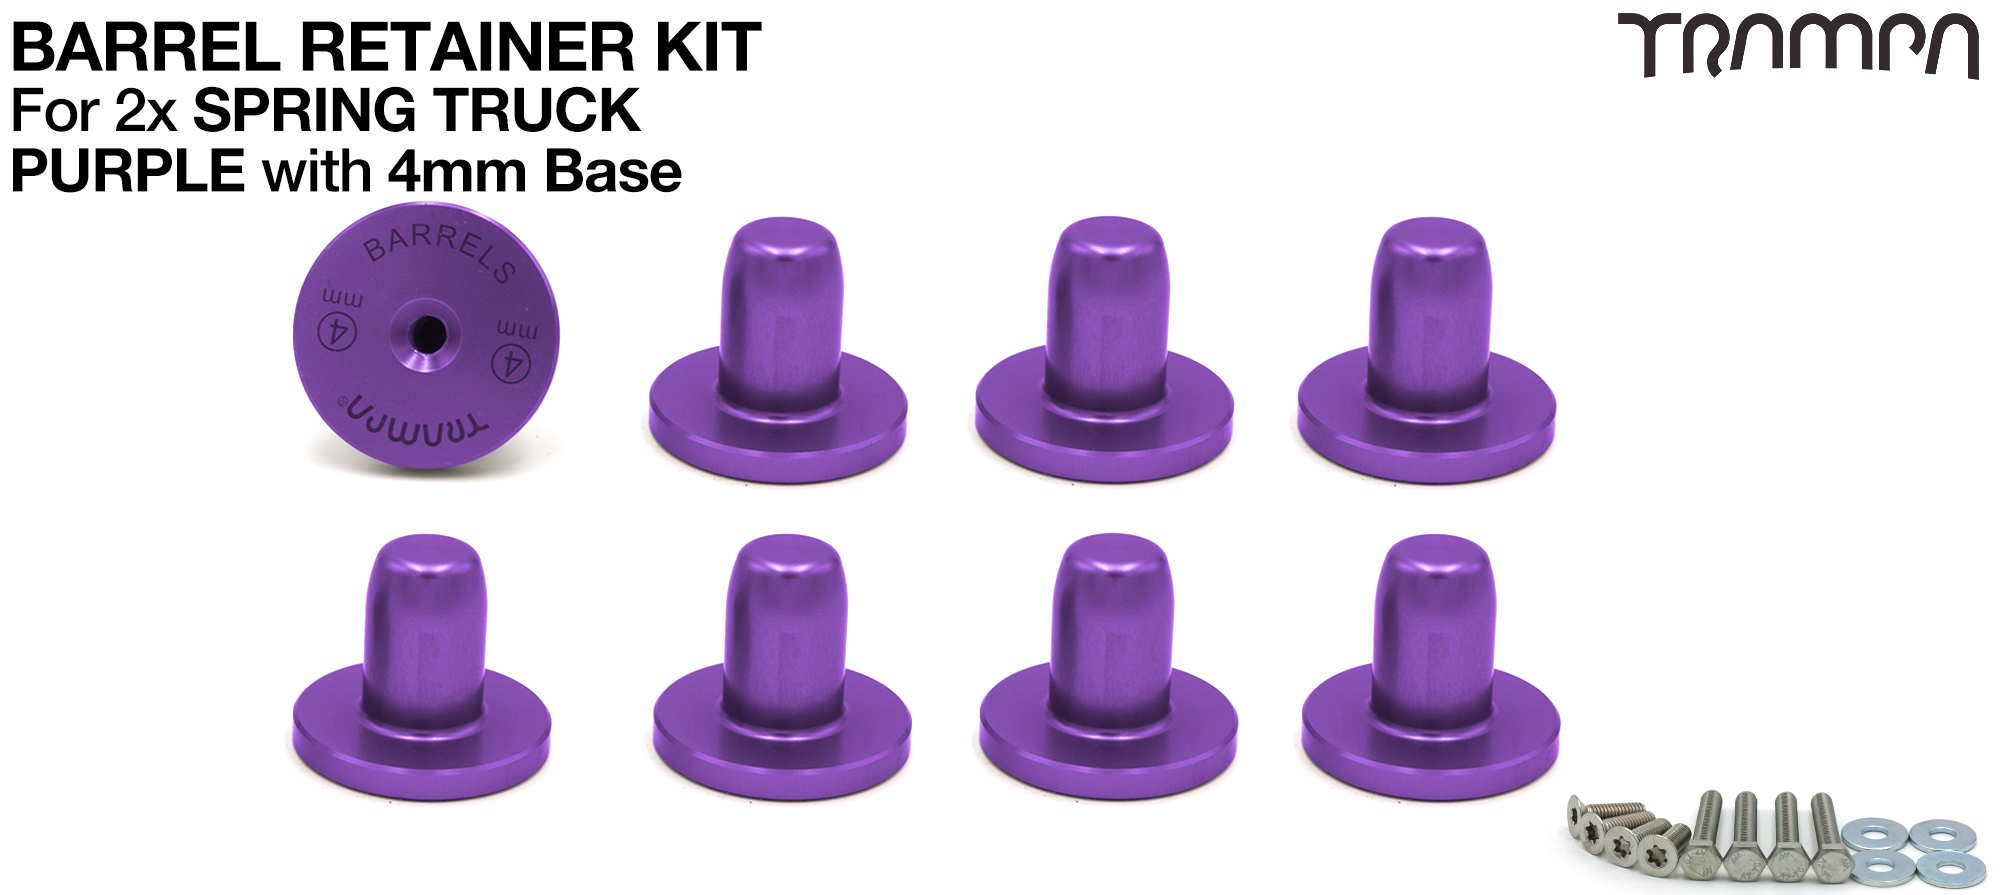 PURPLE Barrel Retainers